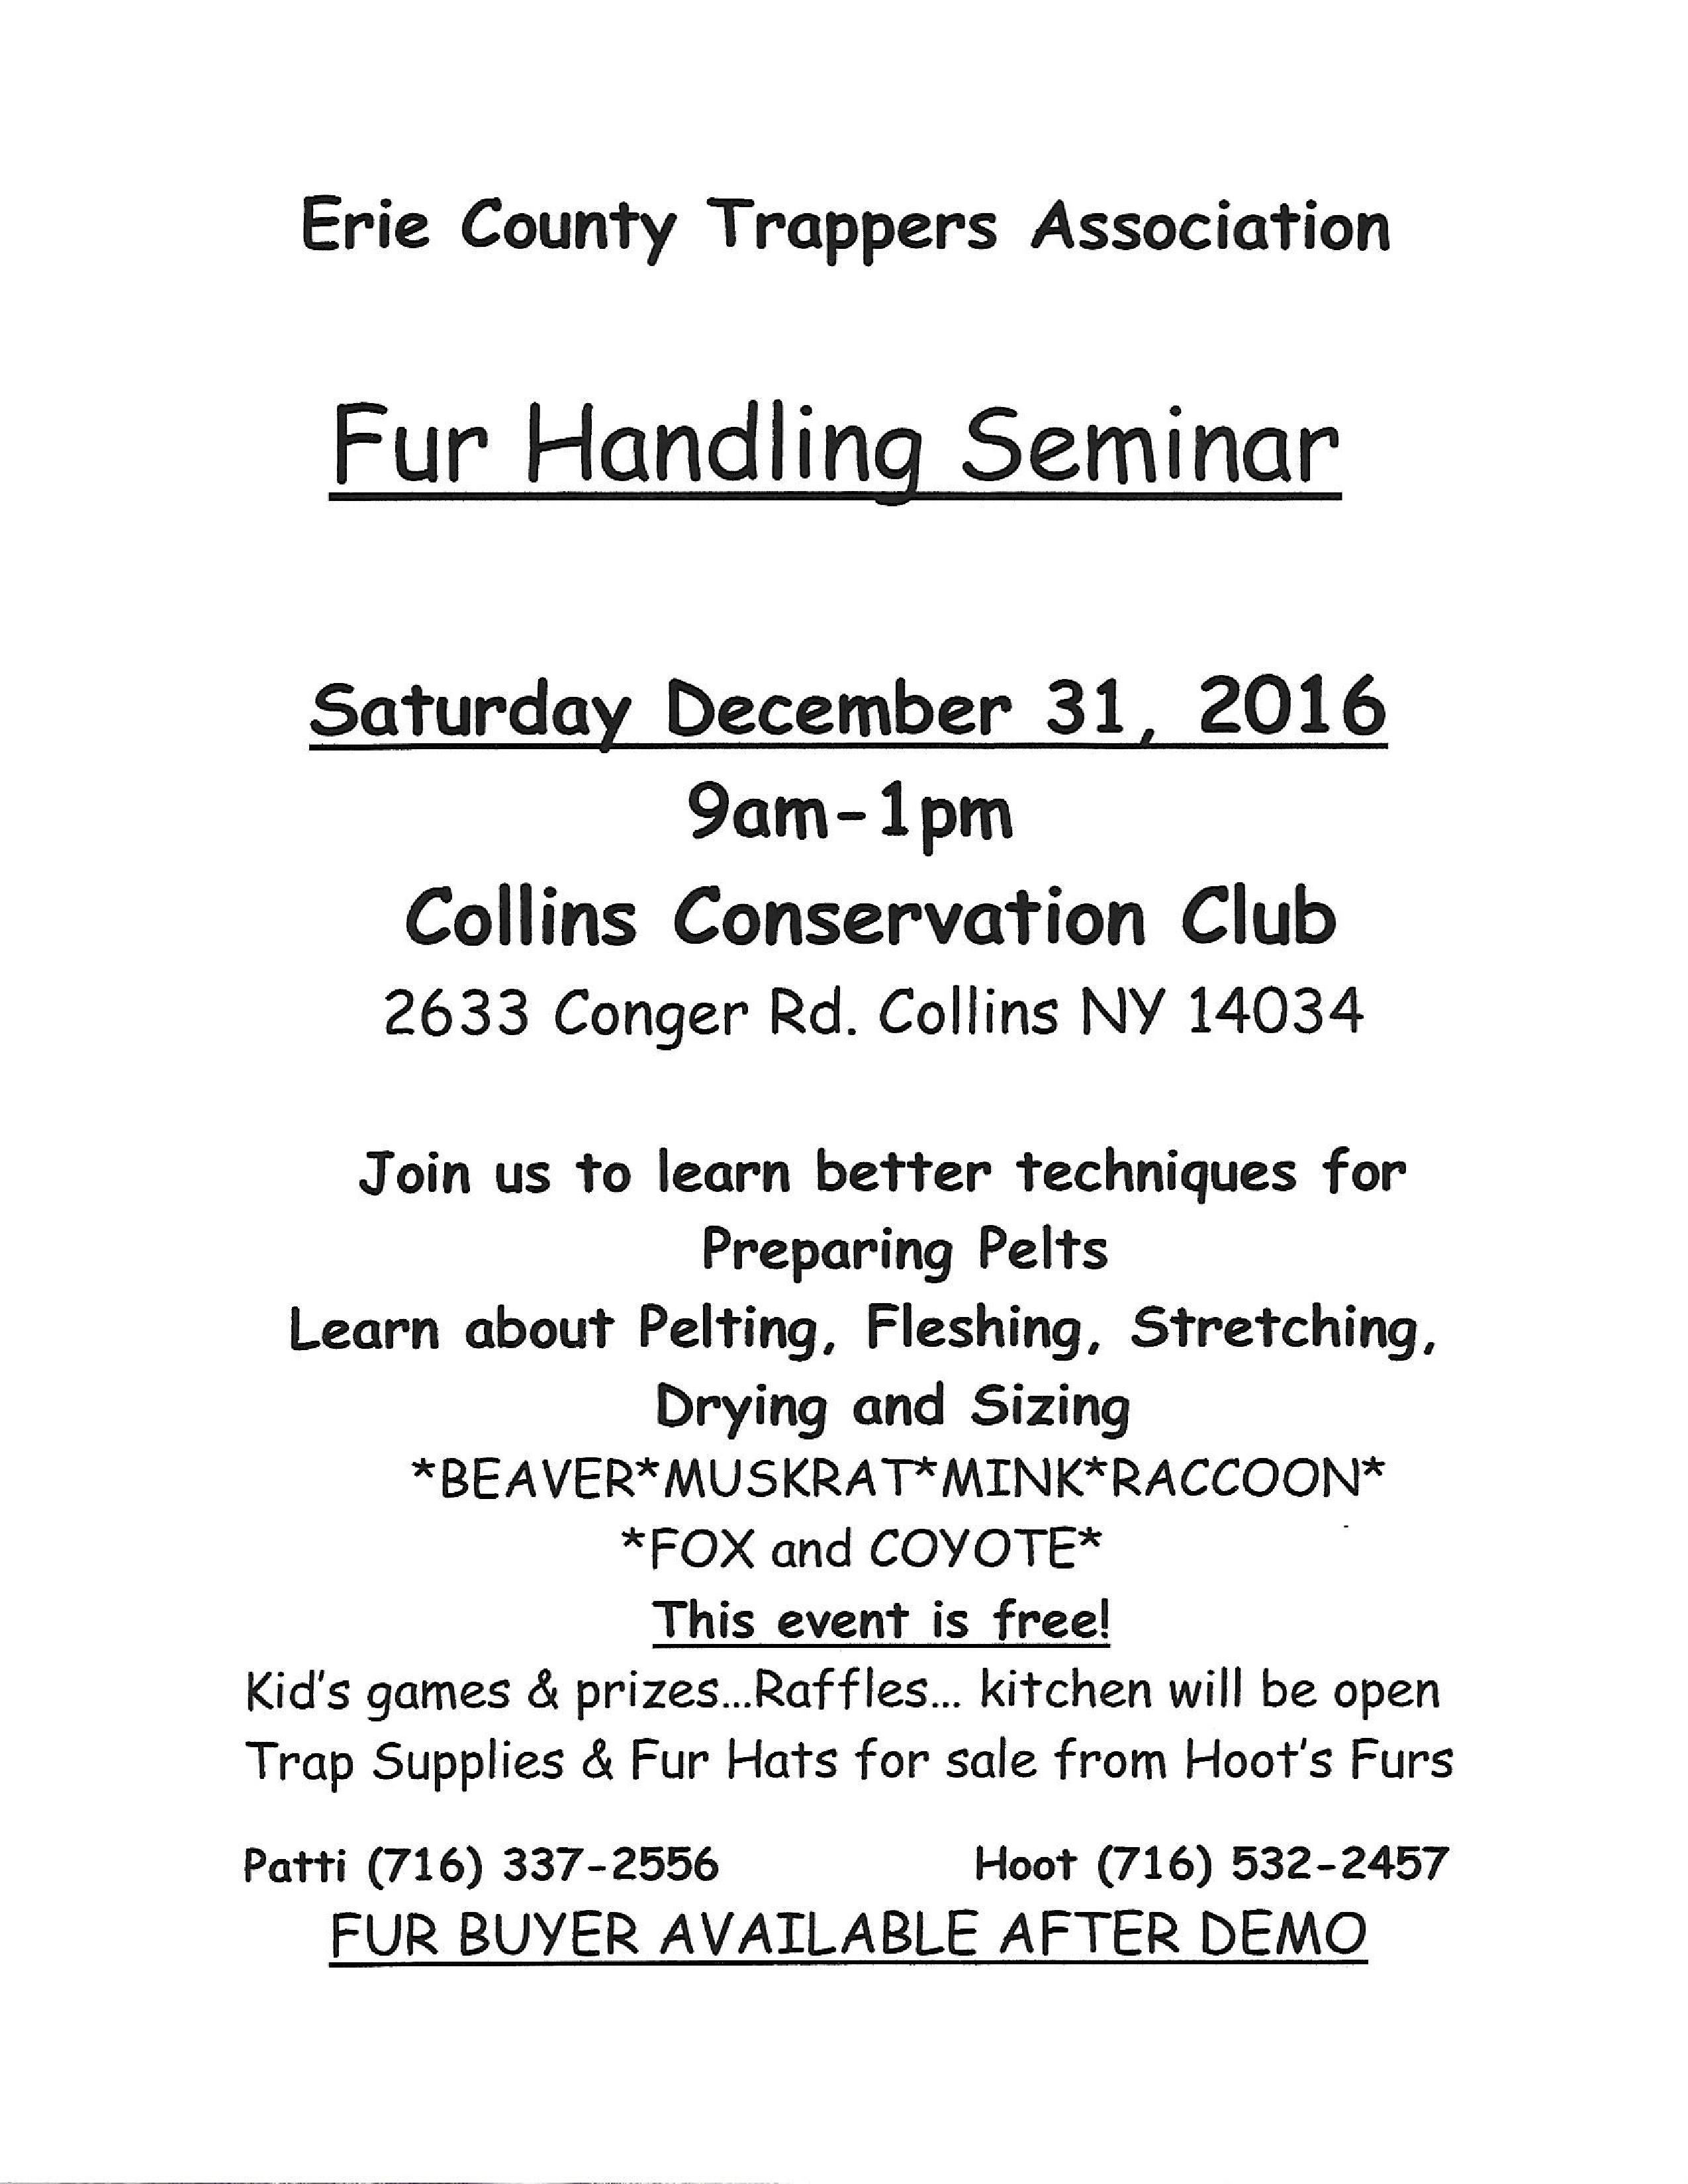 Erie County Trappers Association – Seminar on Fur Handling